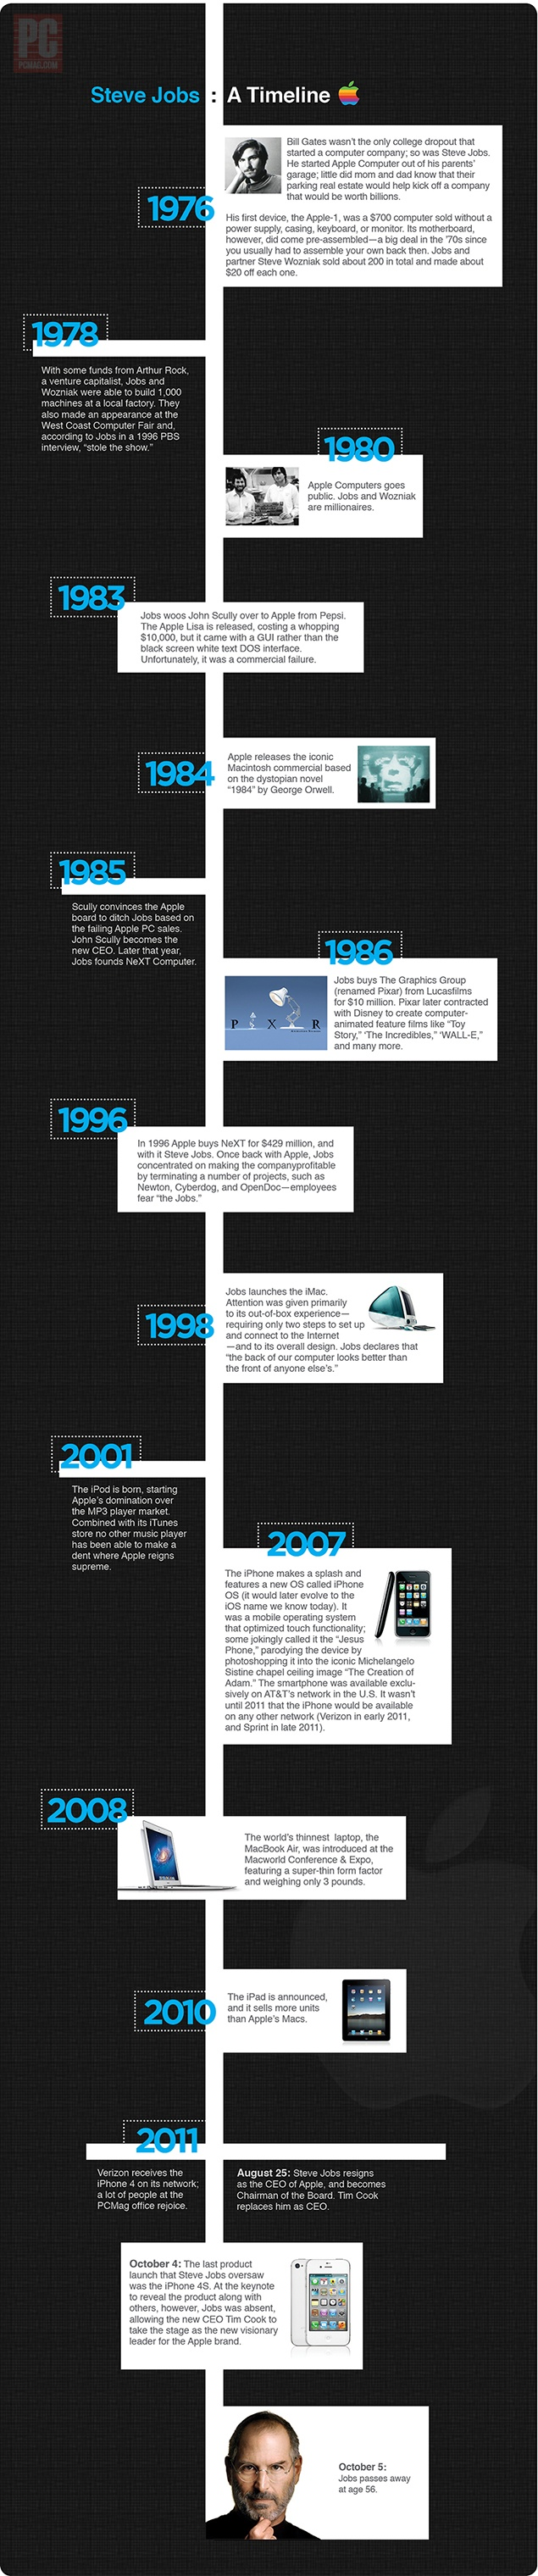 Steve jobs a timeline visit our new infographic gallery at http